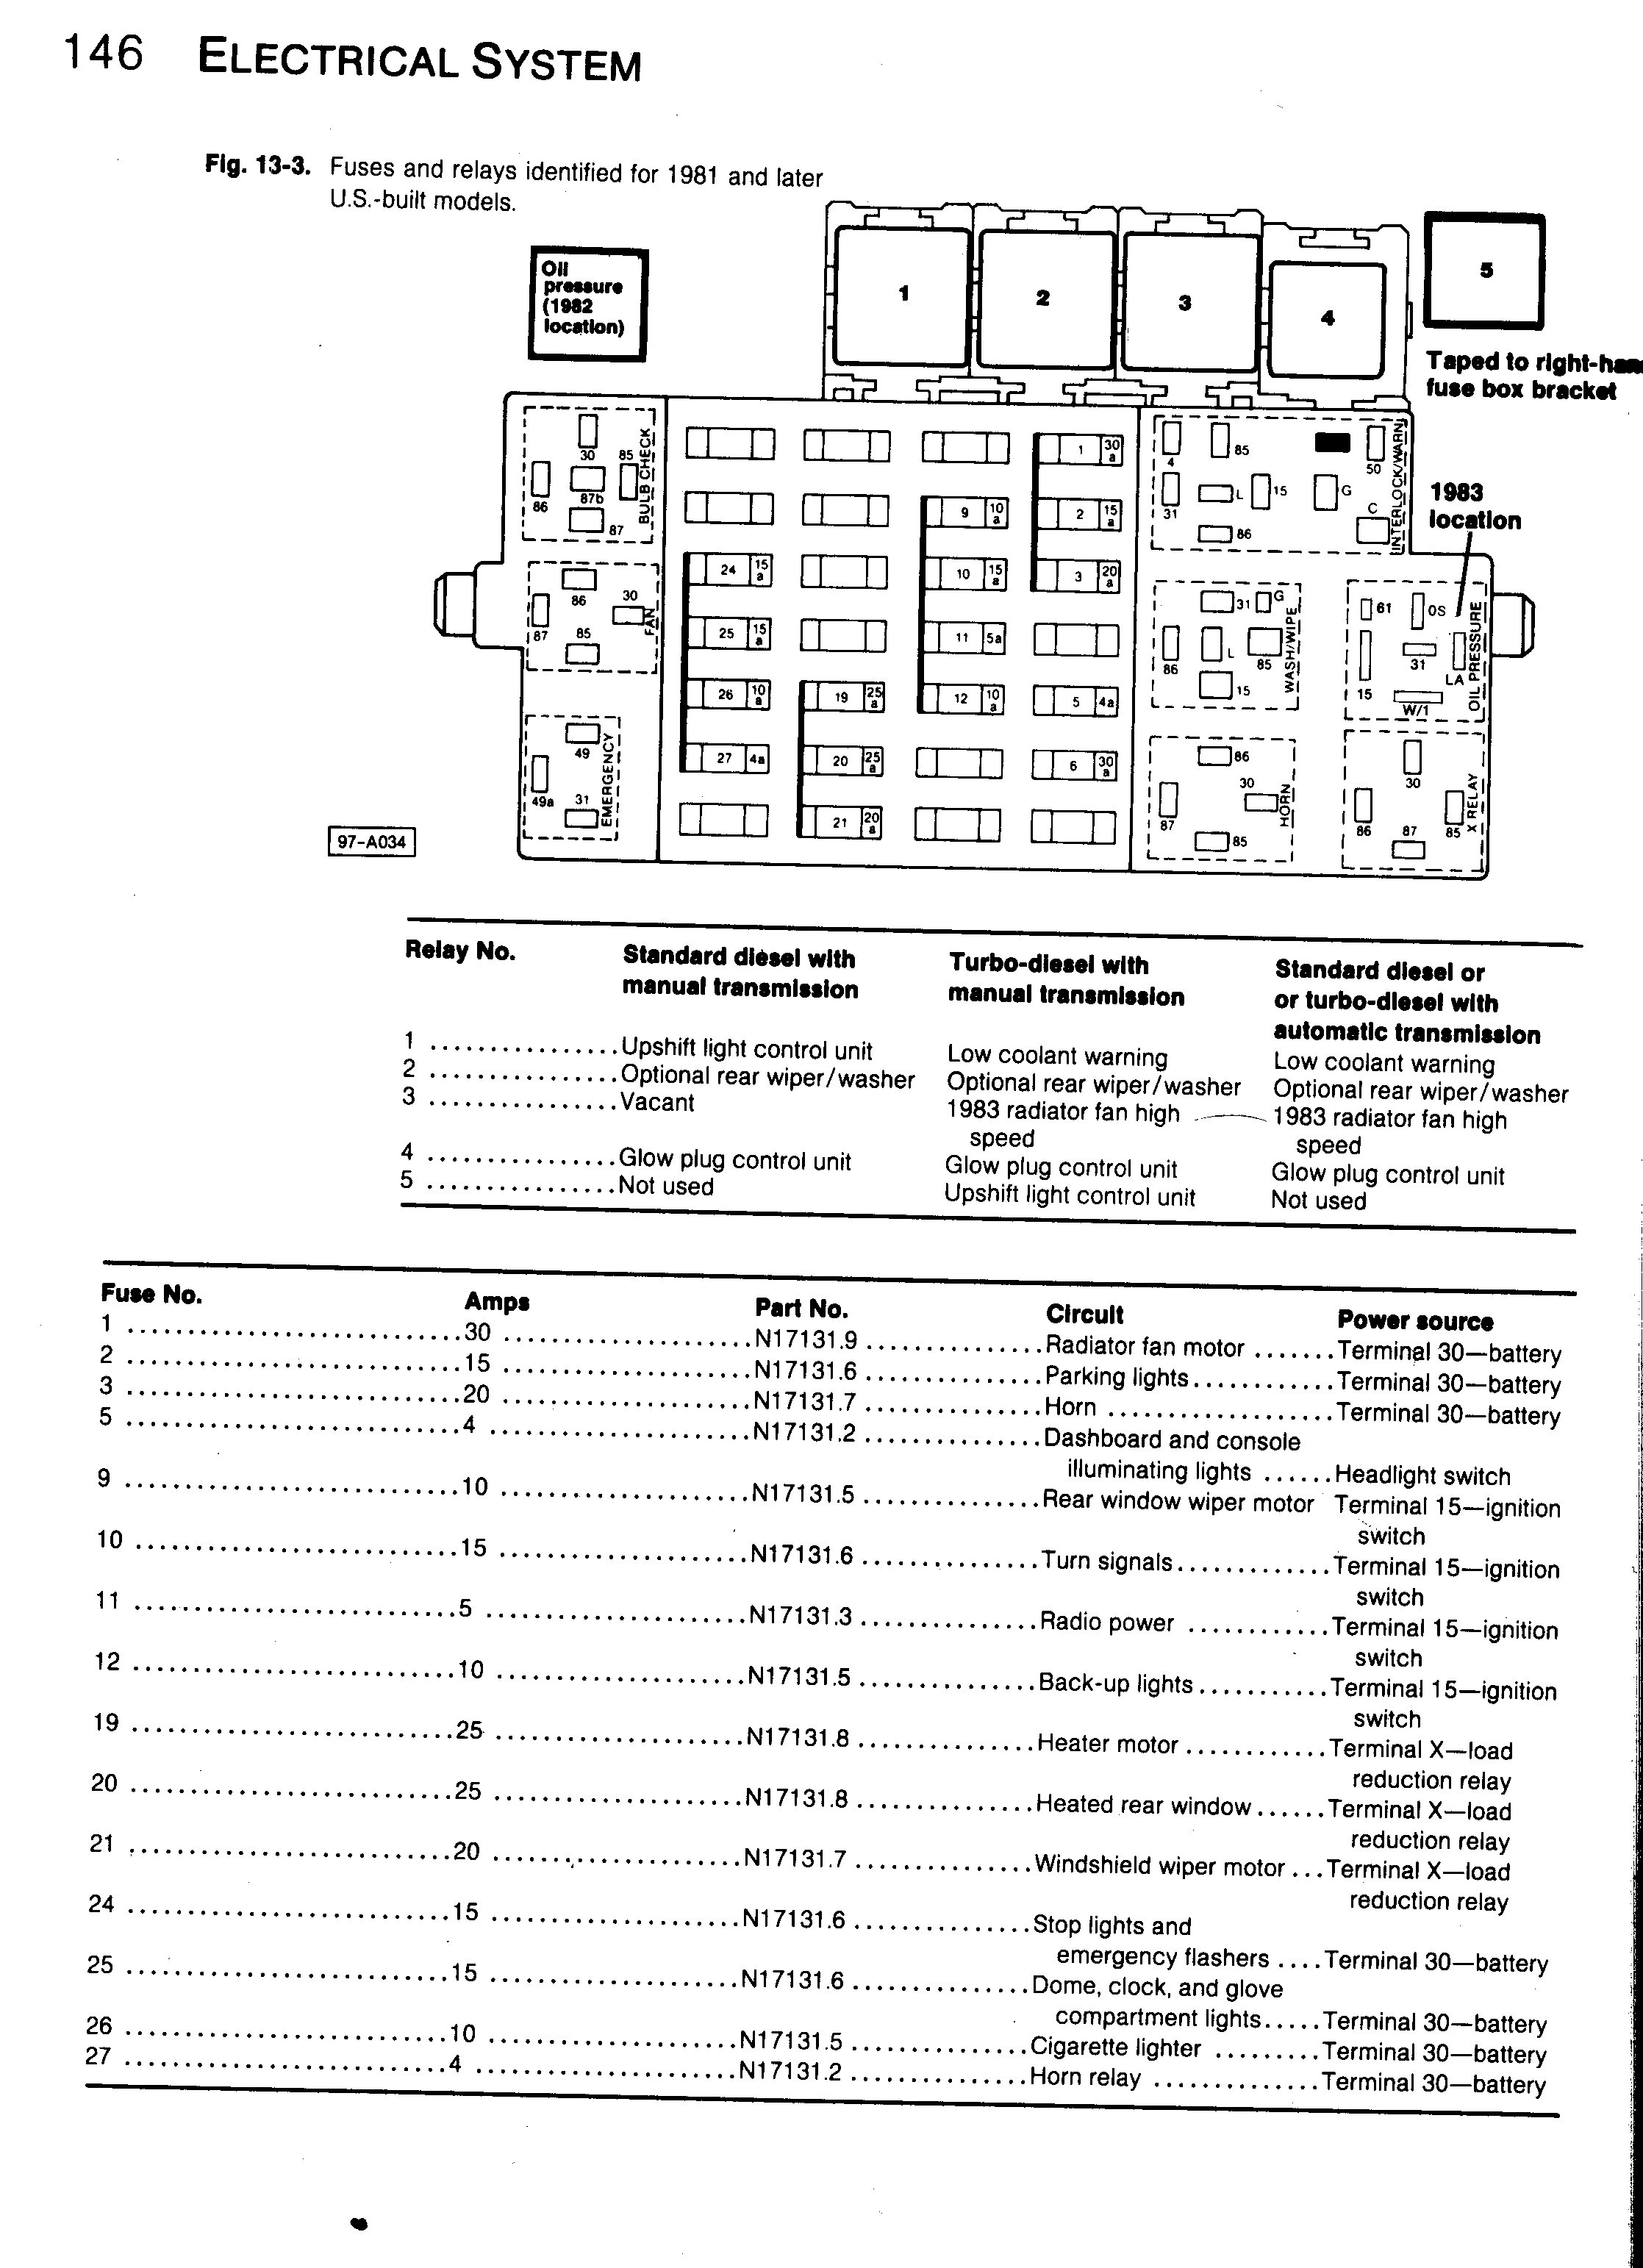 Fuse Box Diagram Jetta 2007 - Sustainiac Wiring Diagrams -  toyota-tps.yenpancane.jeanjaures37.fr | 2007 Vw Jetta Fuse Box Location |  | Wiring Diagram Resource